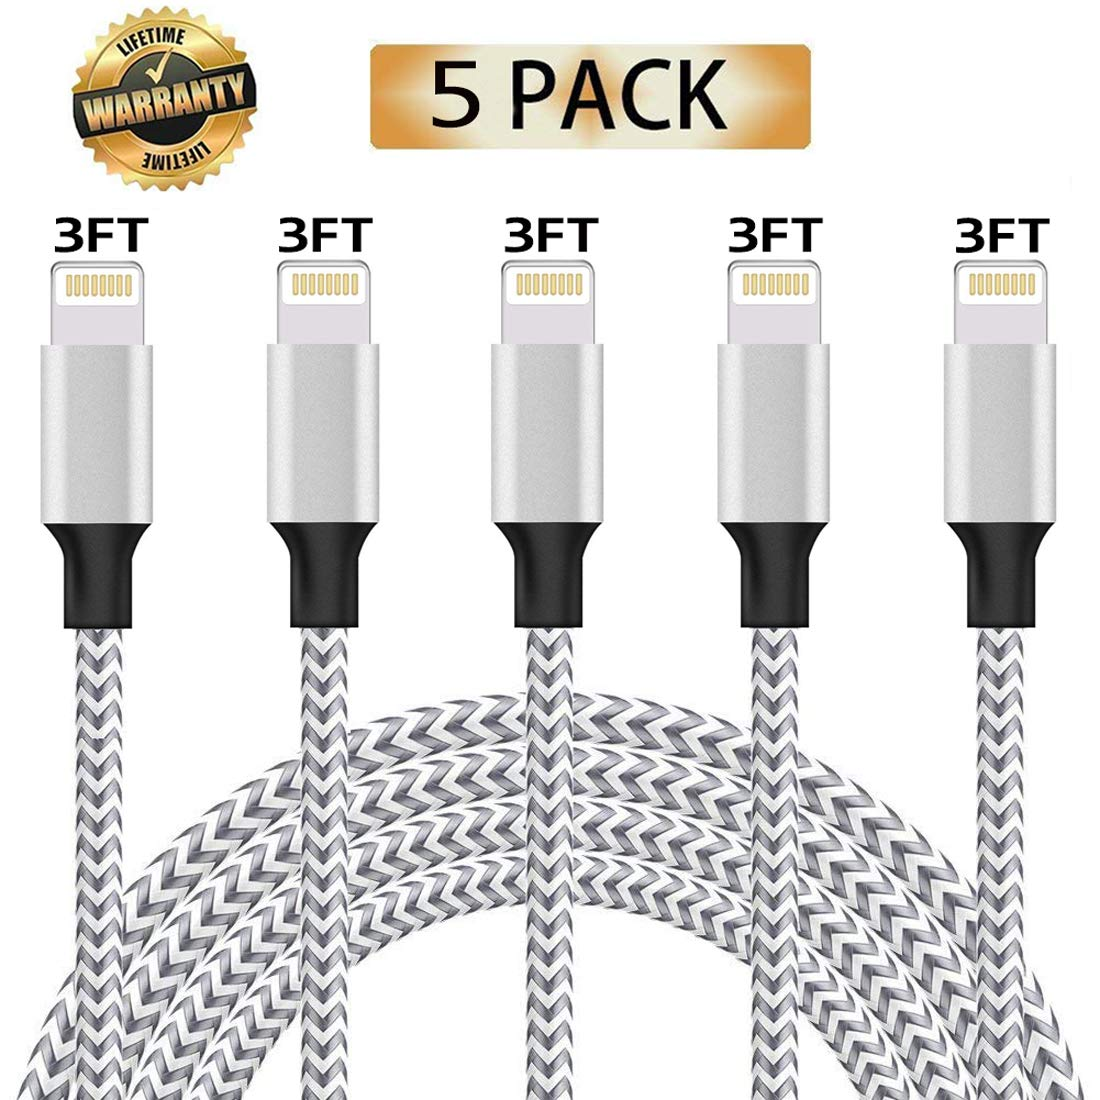 iPhone Charger, Lightning Cable, 5 Pack (3Ft) Nylon Braided Fast Charging Cable USB Charger Data Sync Cord Compatible with iPhone 7/Plus/XS Max/XS/XR/X 10/8/Plus/6S 6/Se More ZestyChef